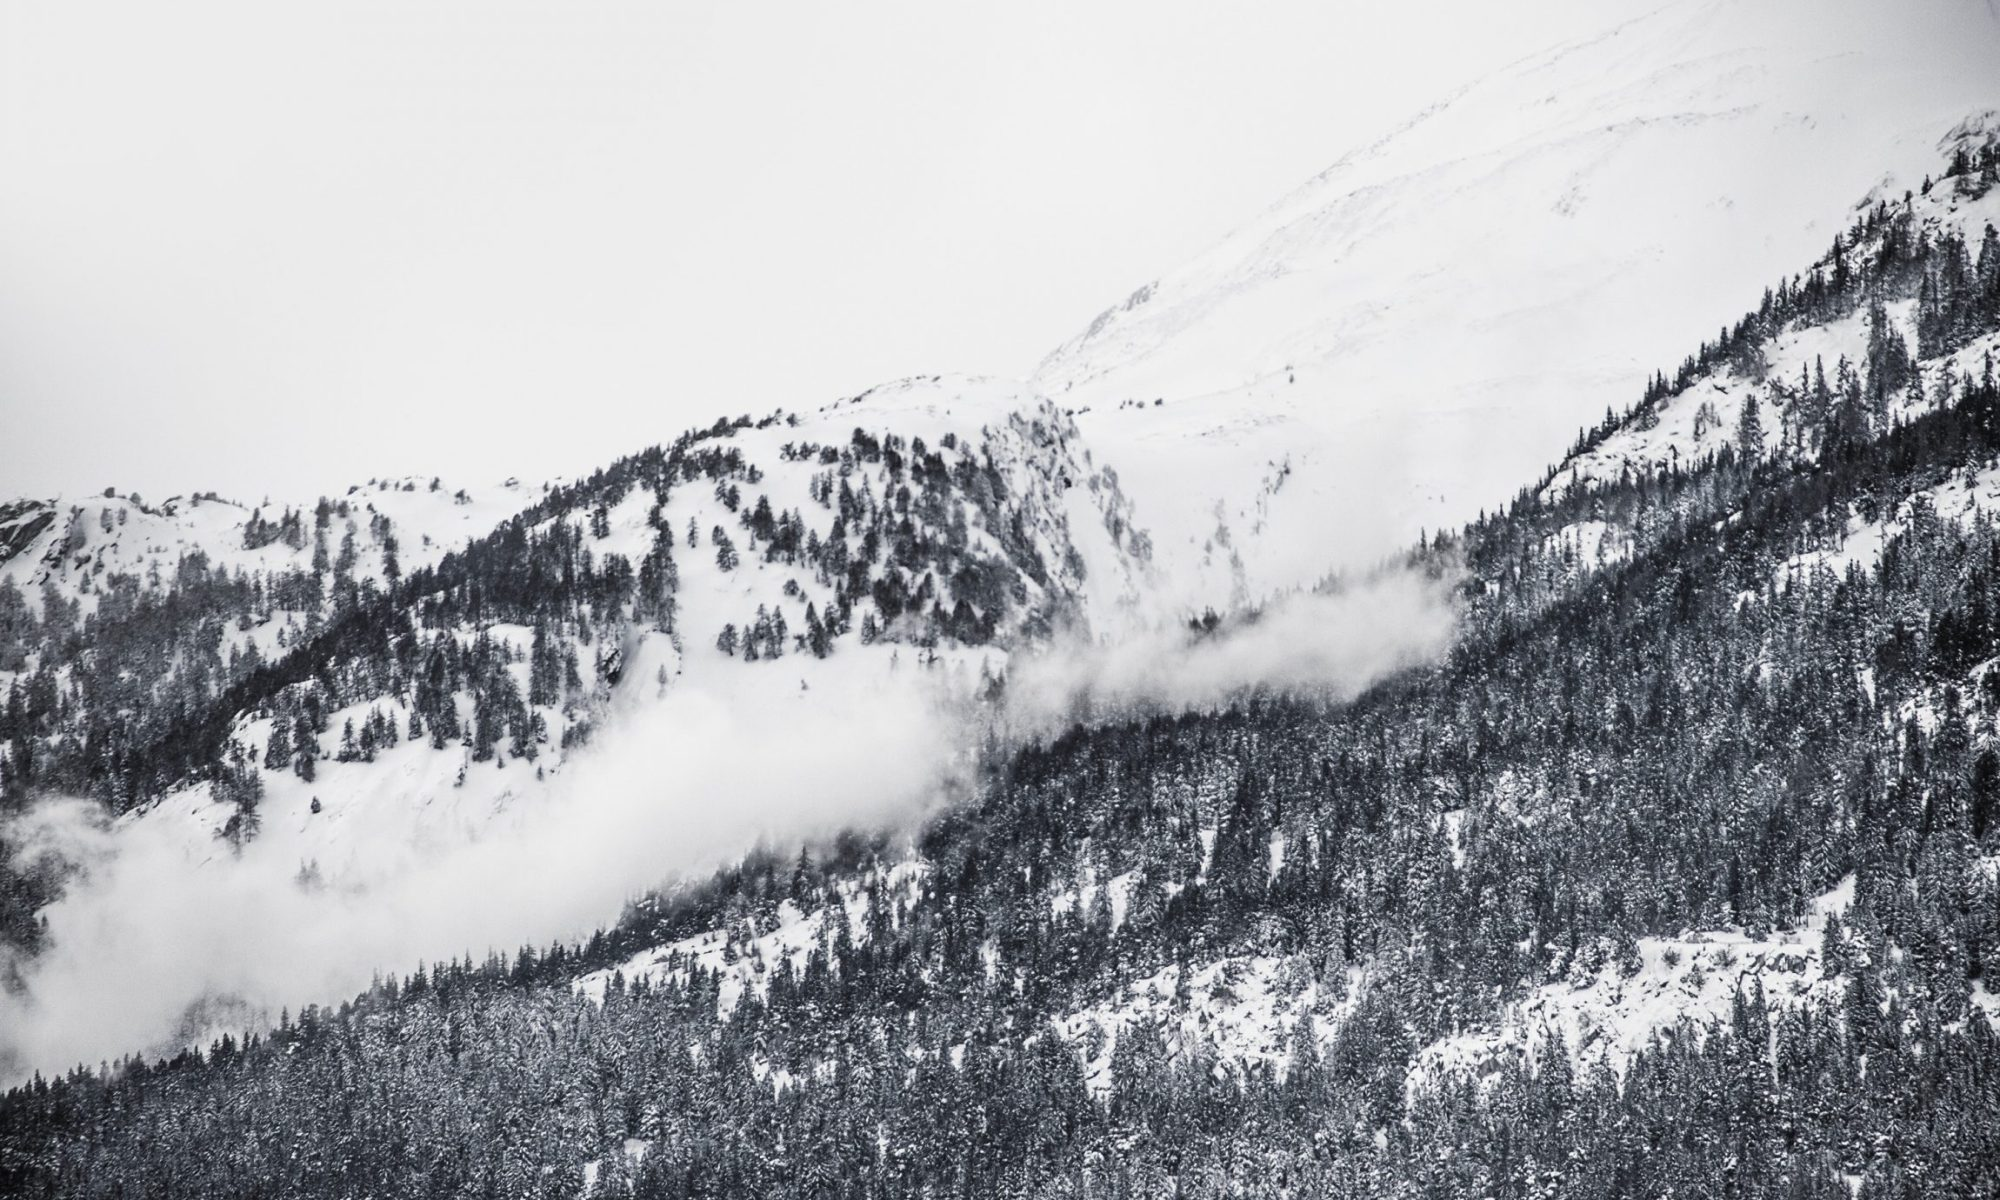 An avalanche has swept two cars while crossing the Klausen Pass in Switzerland. THREE HURT: Cars swept away by Swiss alpine pass avalanche. Photo of an avalanche by Caspar Rubin - Unsplash.